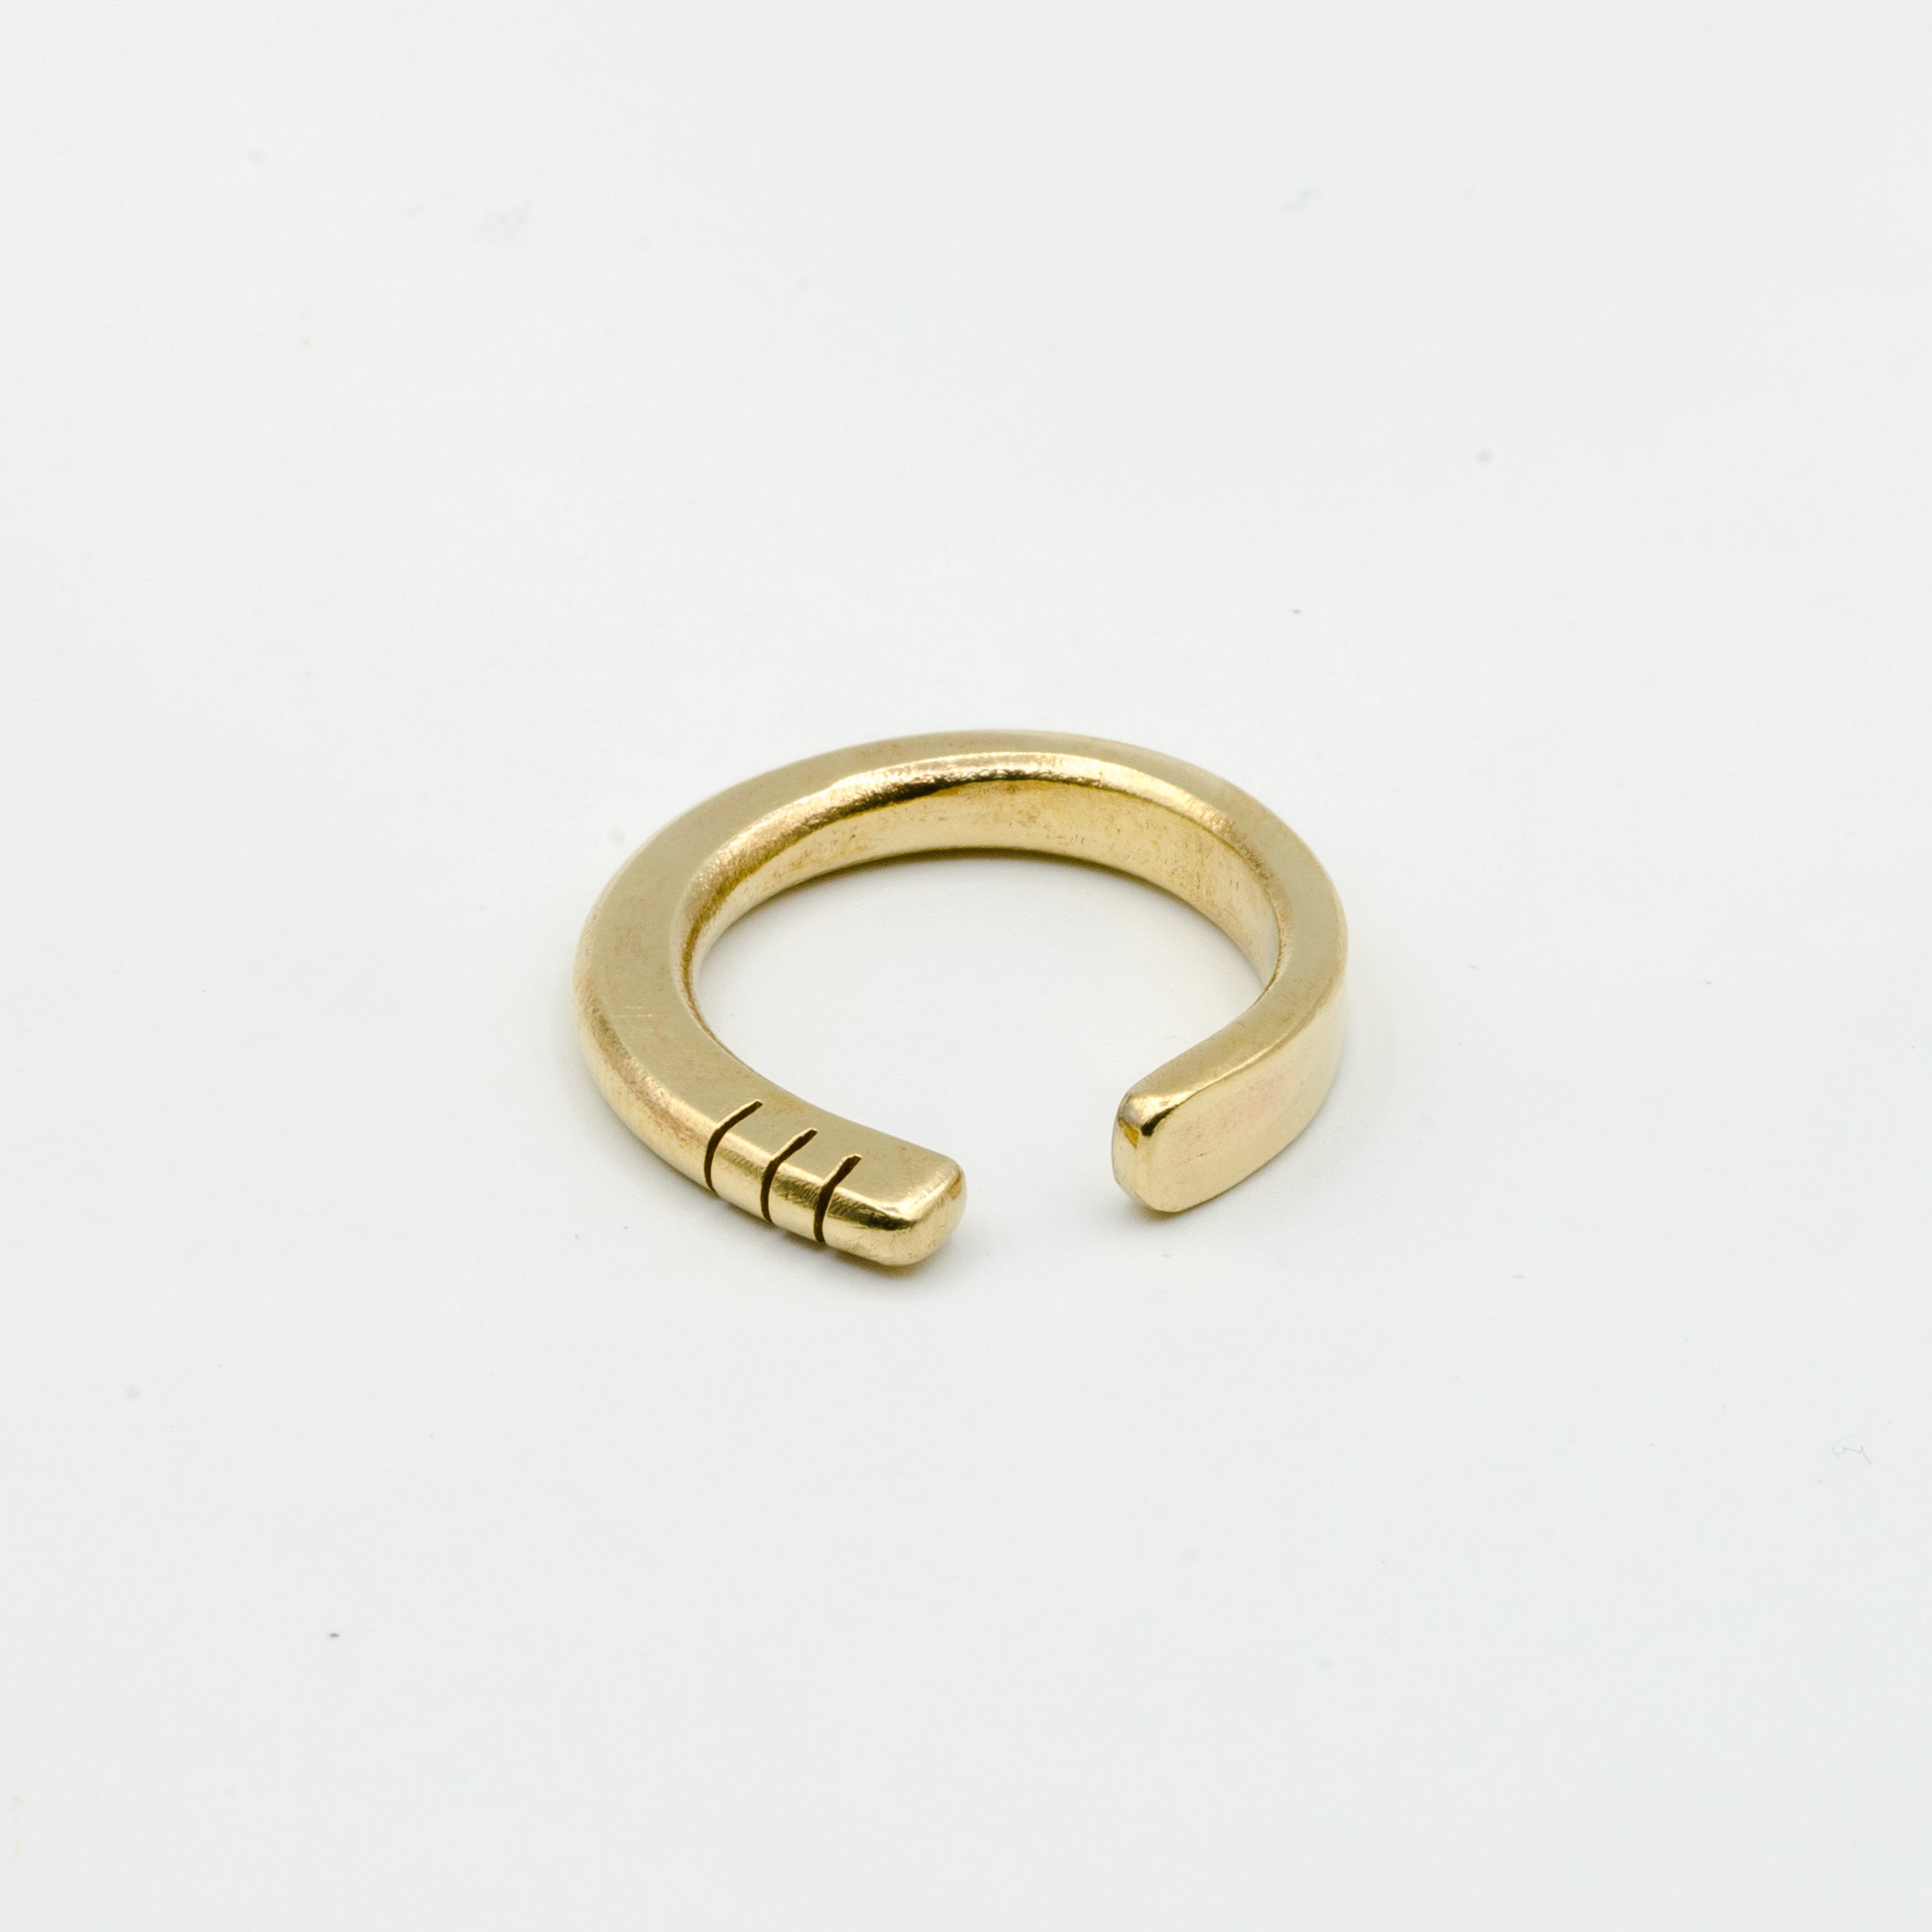 top view of hand forged brass ring with three notches